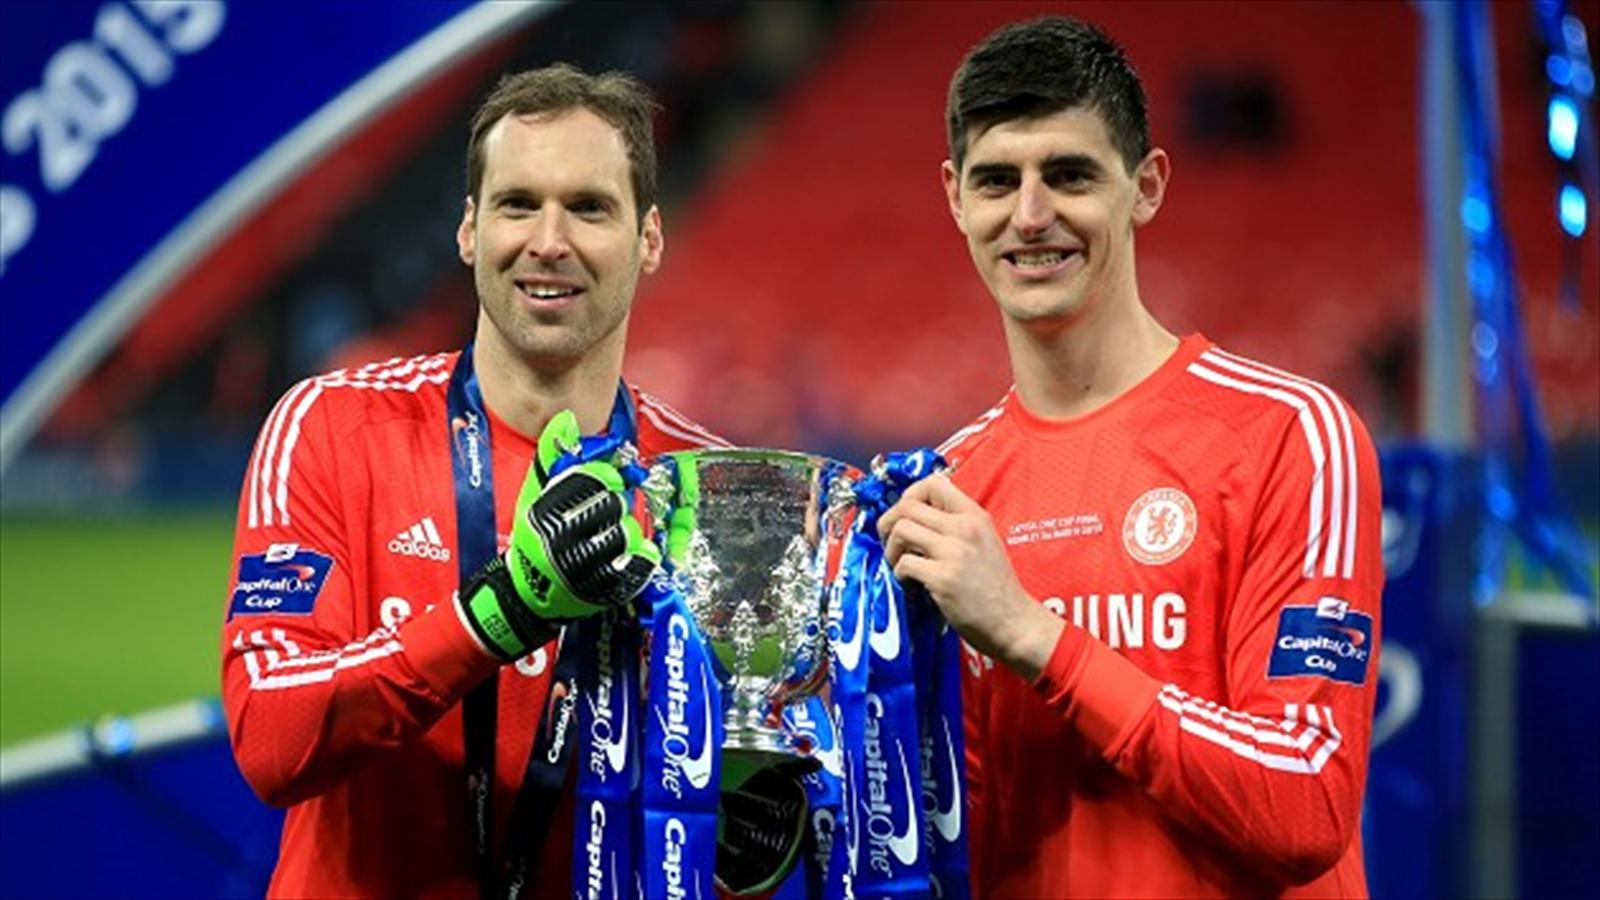 Arsenal's new signing Petr Cech and former Chelsea team-mate Thibaut Courtois